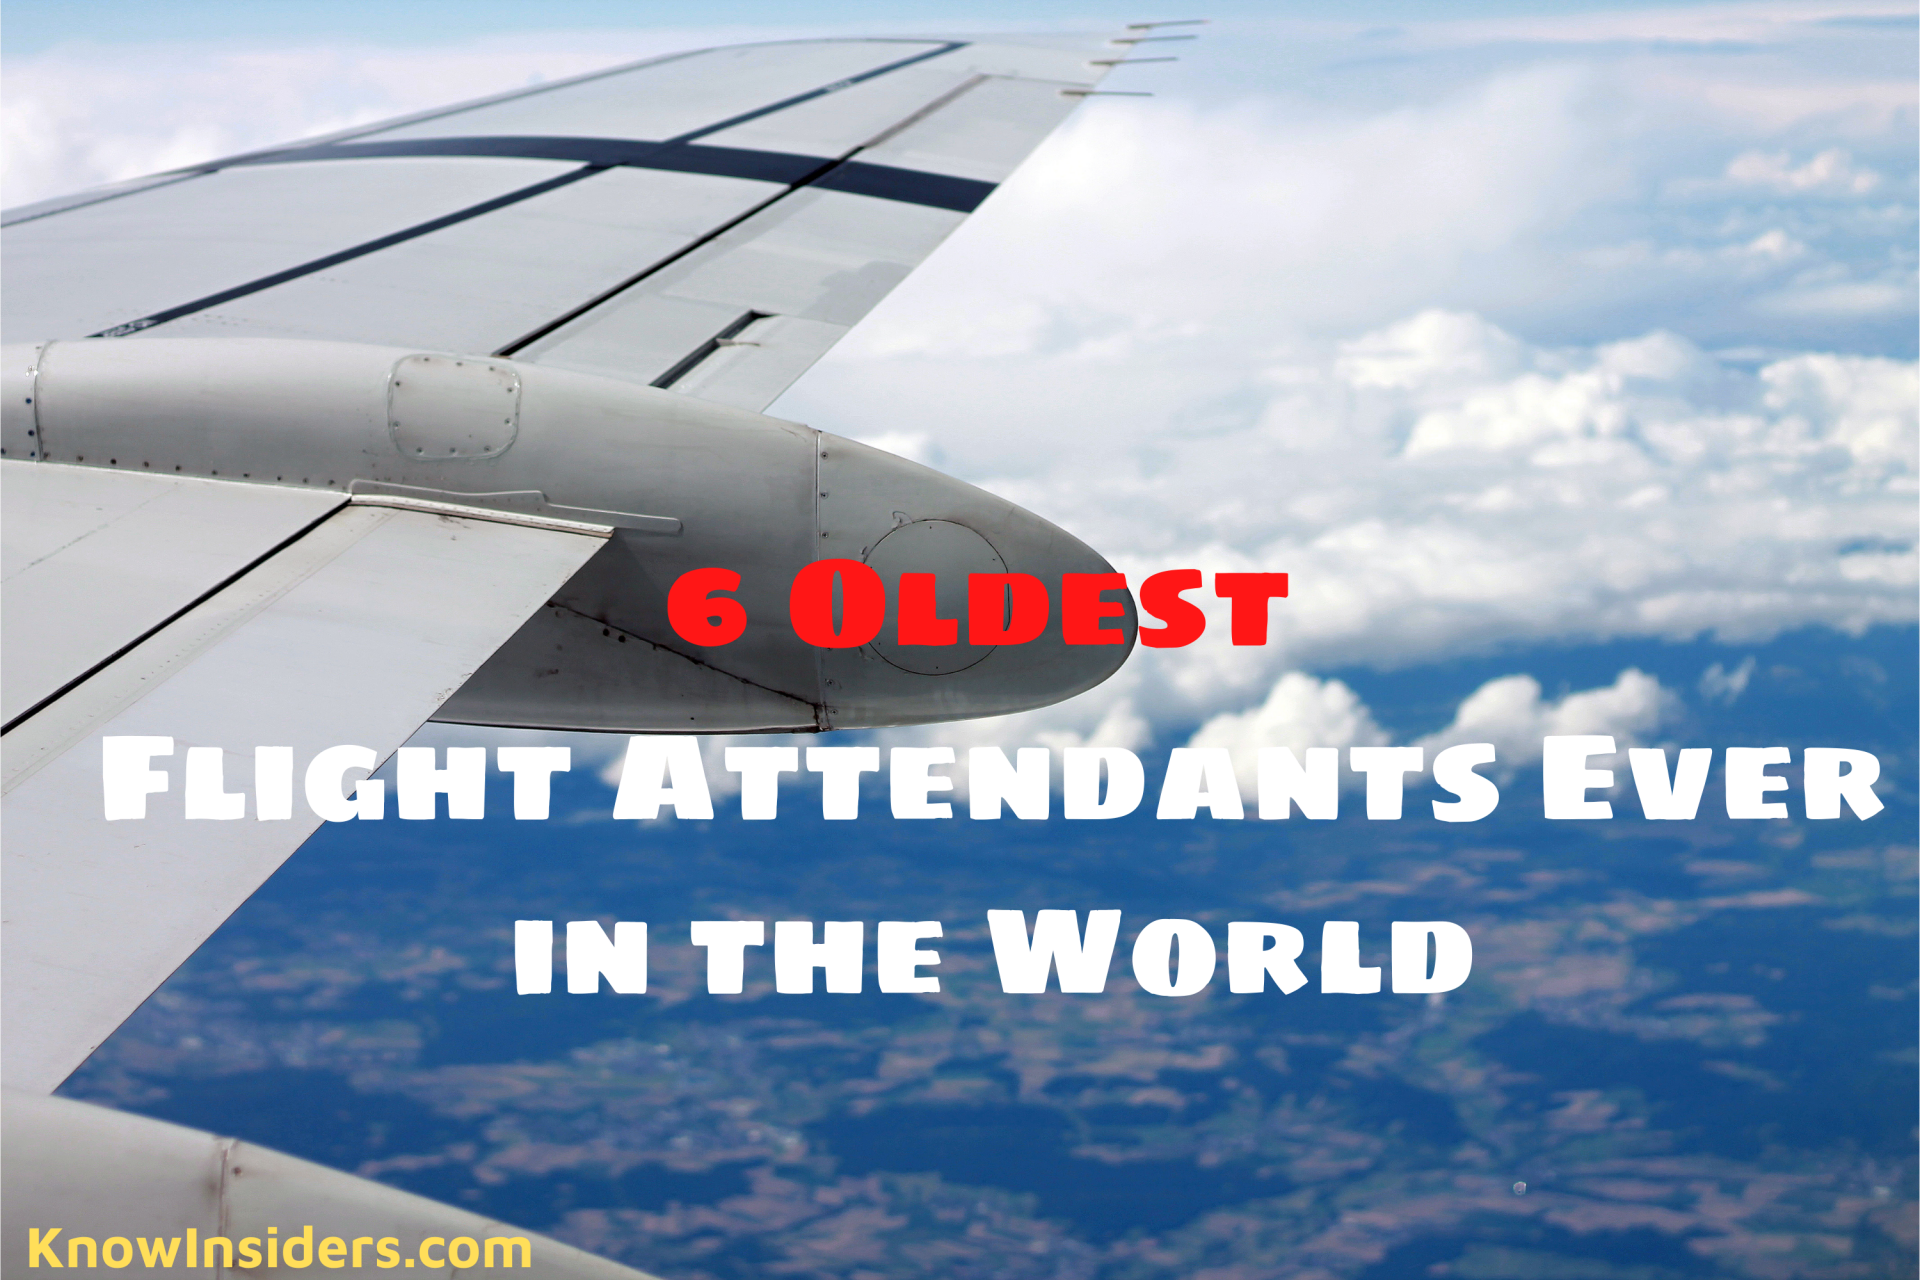 6 Oldest Flight Attendants Ever in the World